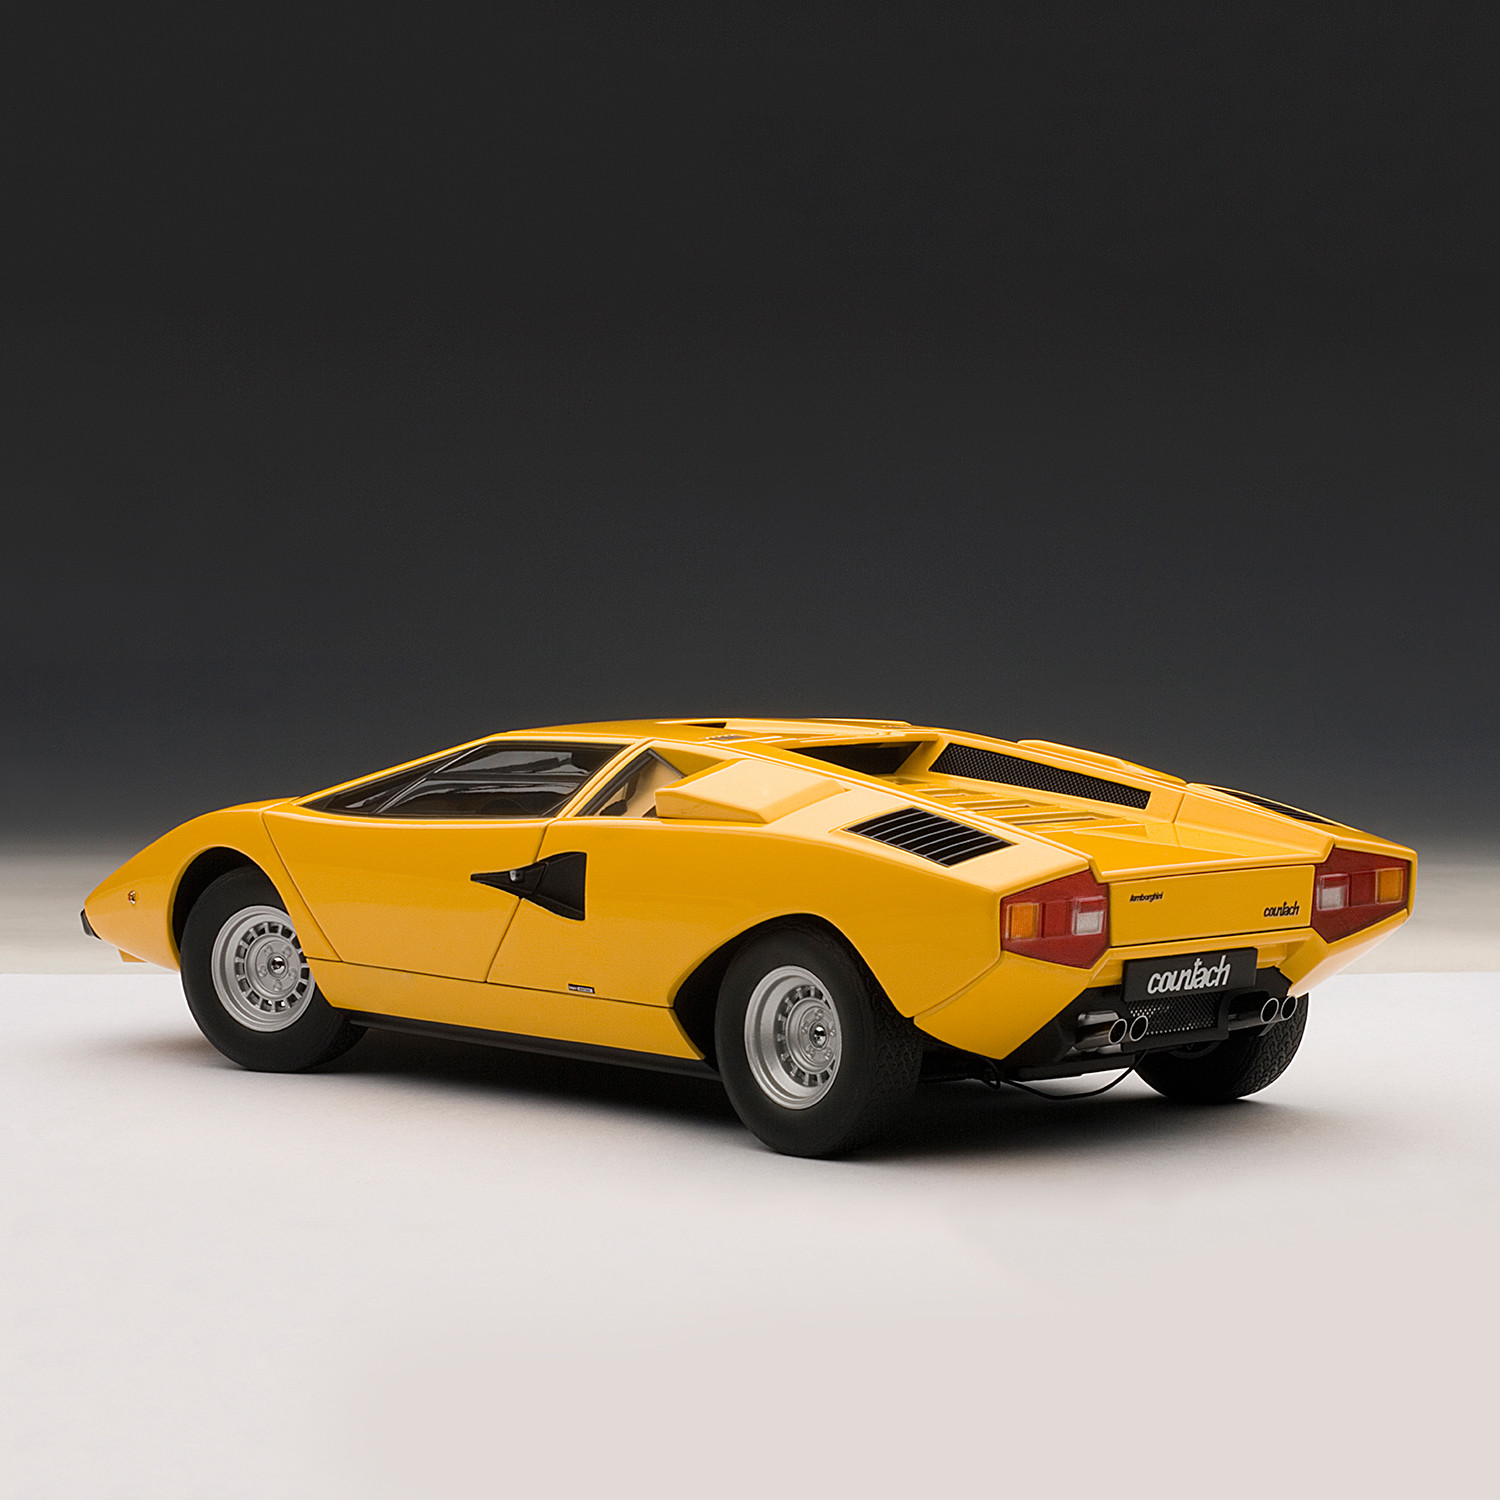 lamborghini countach lp400s yellow auto art touch of modern. Black Bedroom Furniture Sets. Home Design Ideas